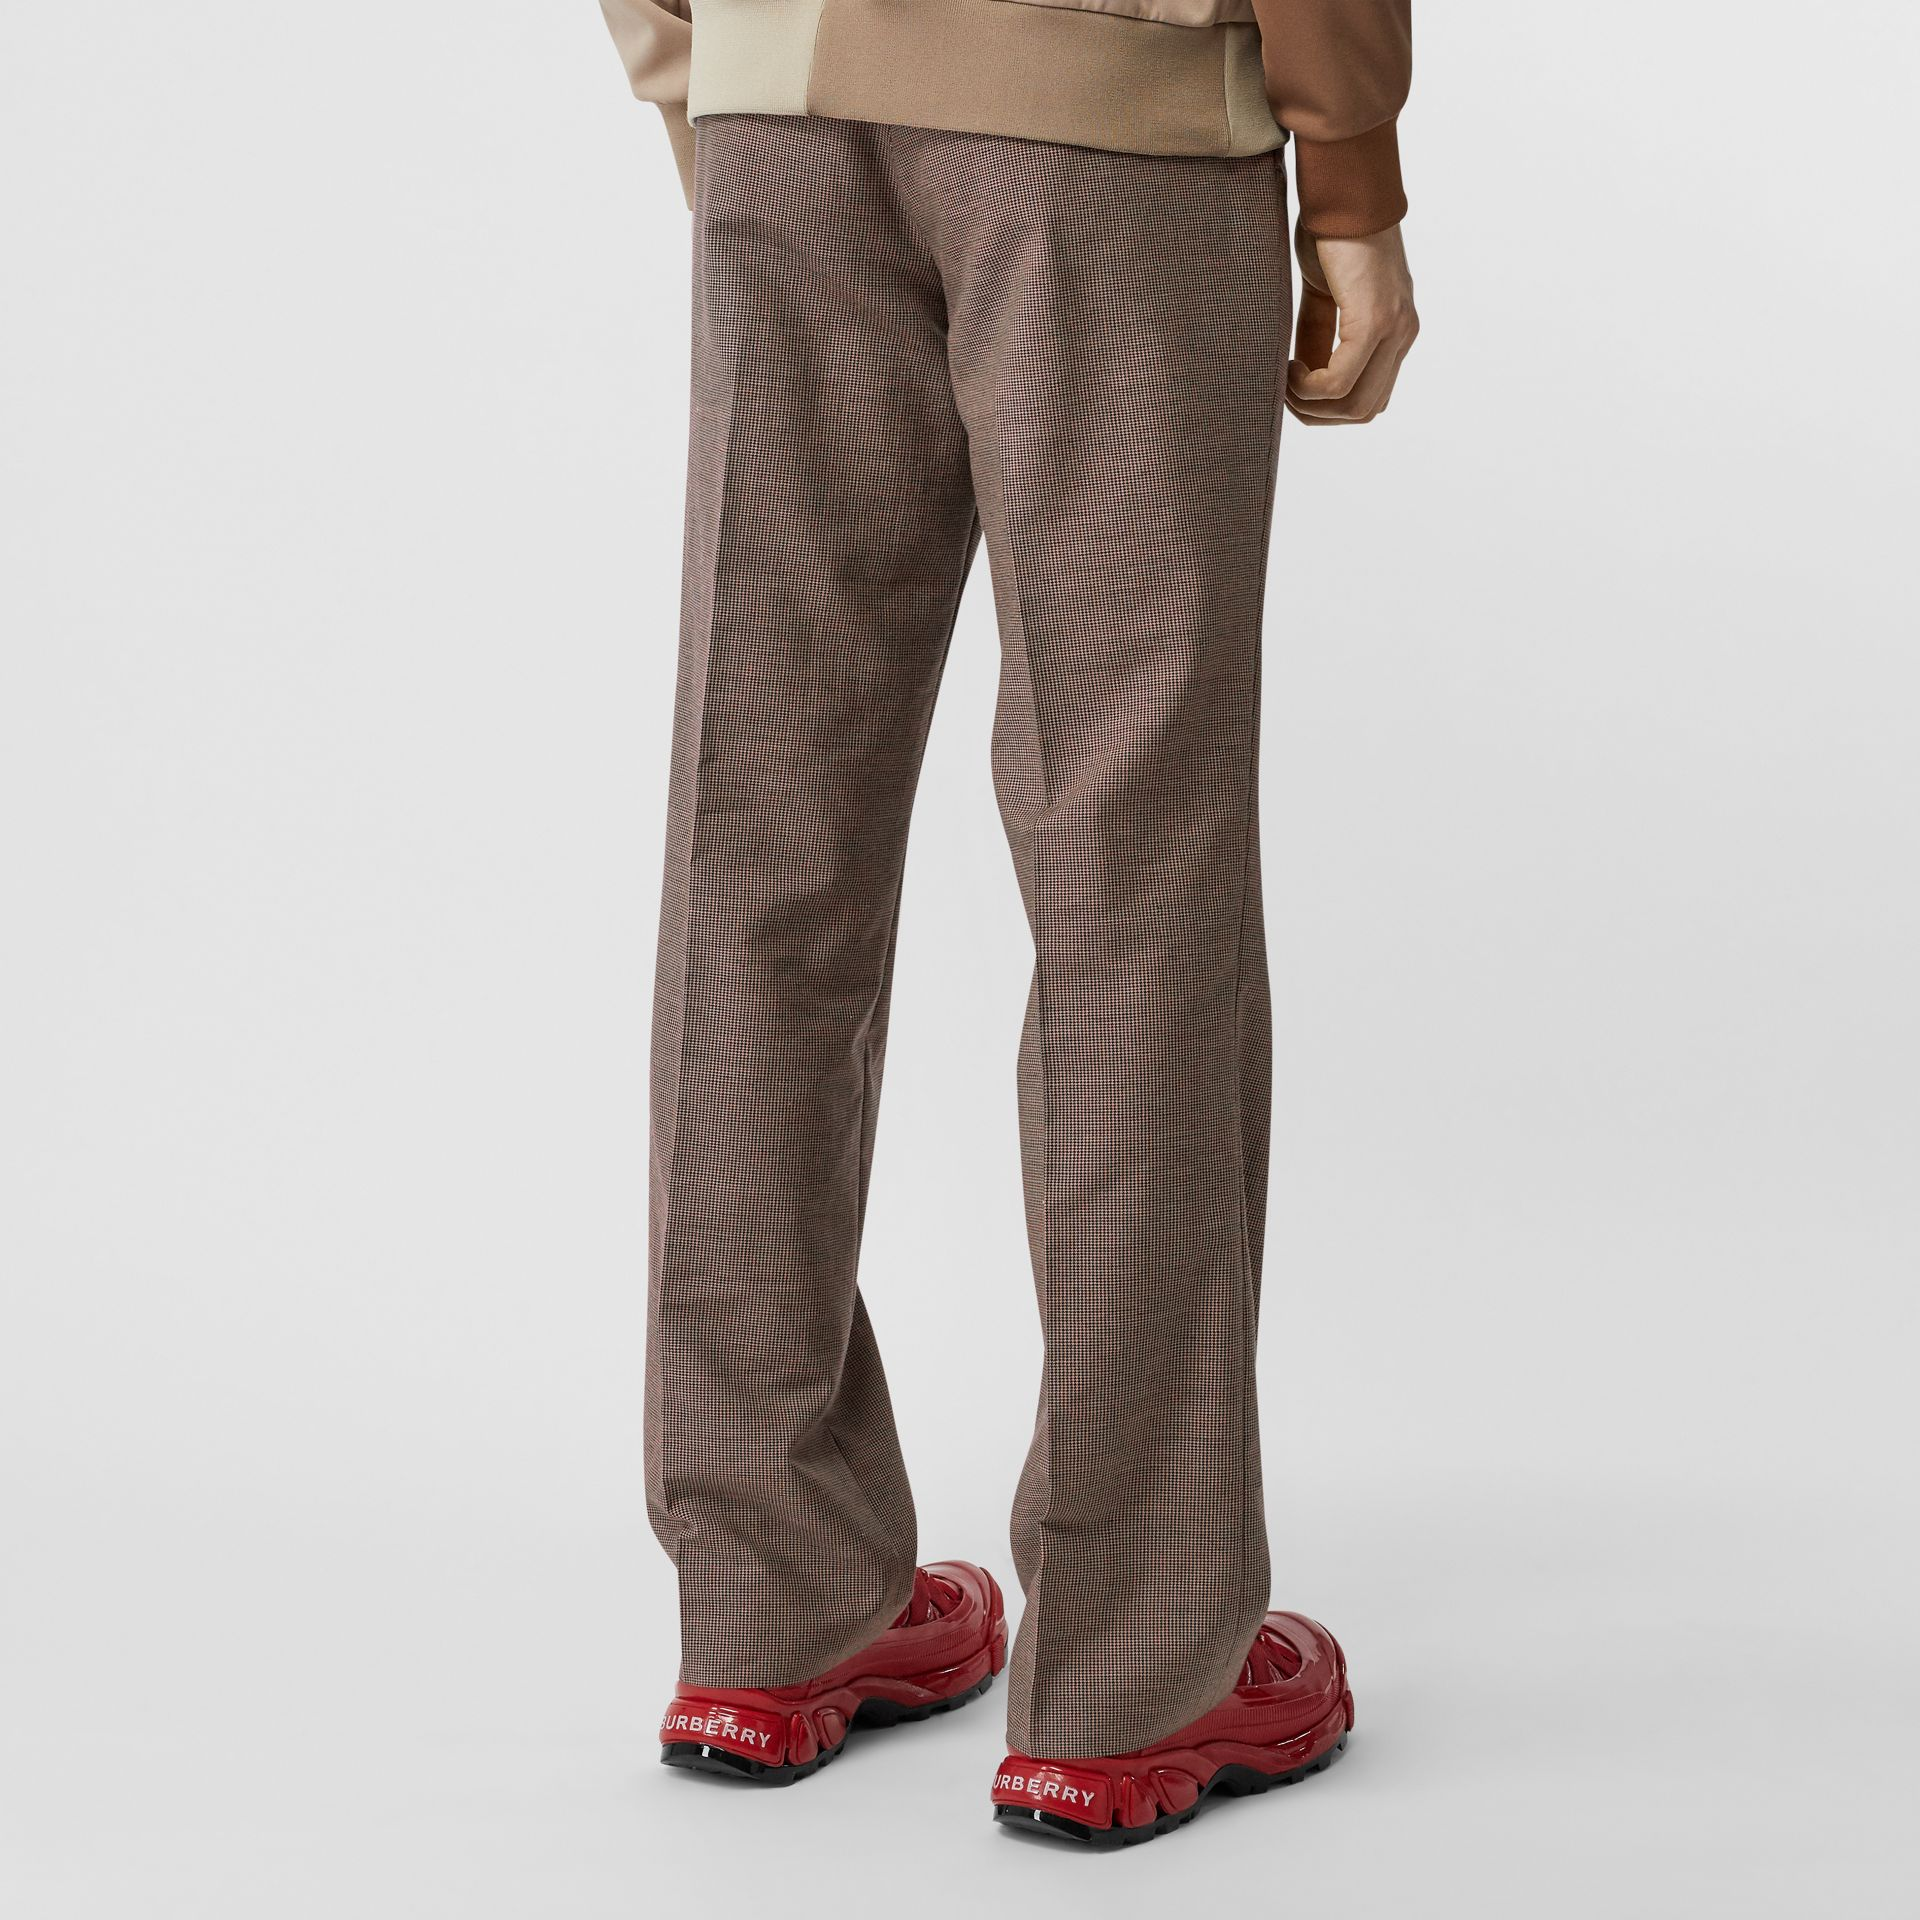 Pocket Detail Wool Tailored Trousers in Beige - Men | Burberry Hong Kong S.A.R - gallery image 2